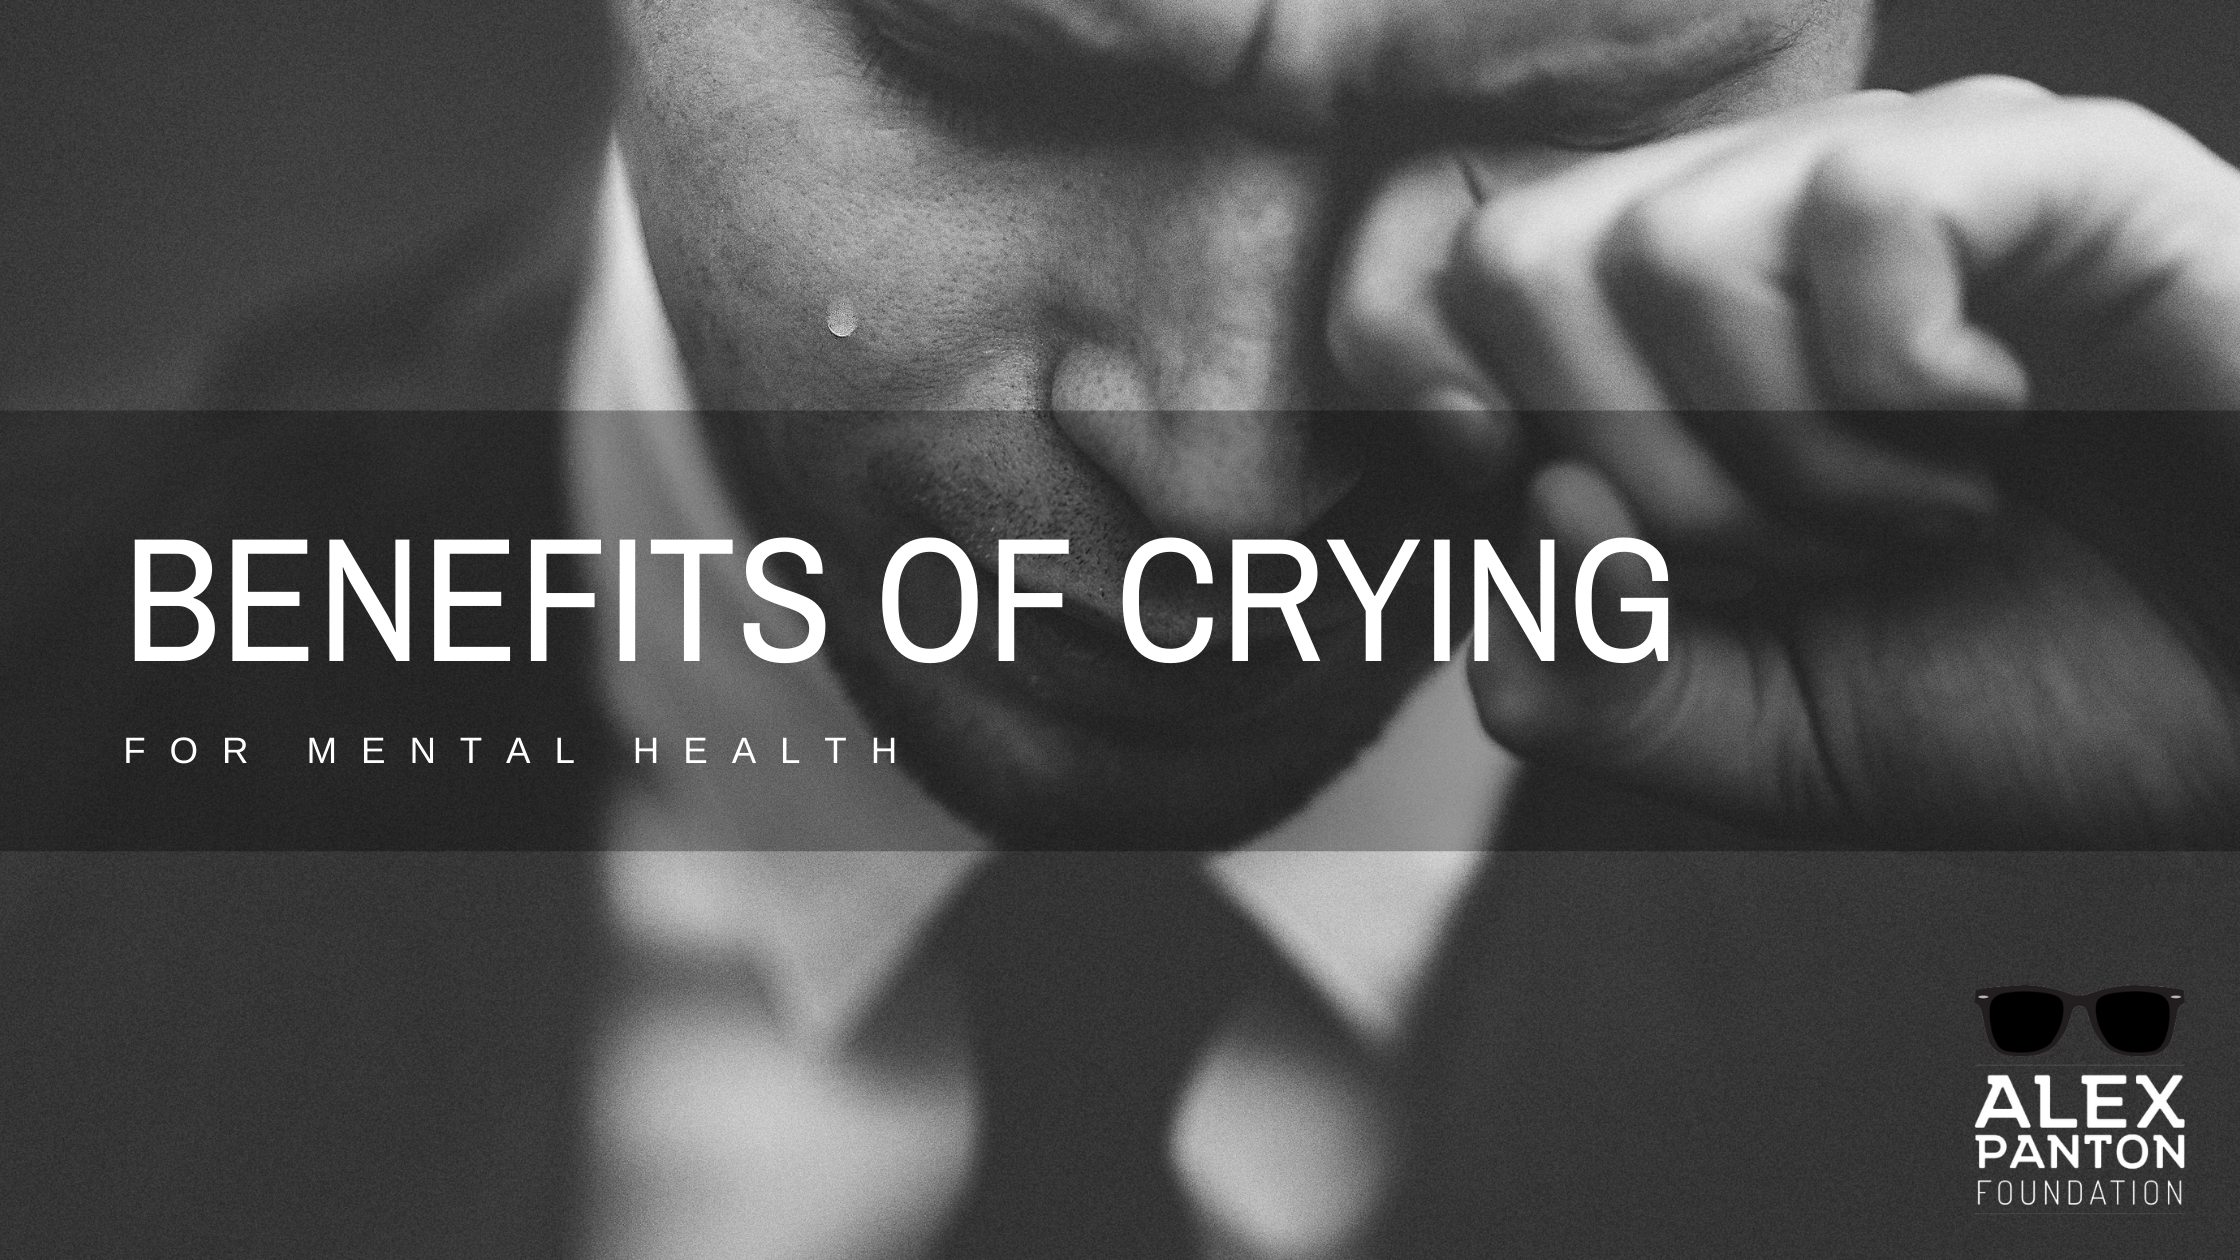 Benefits of Crying